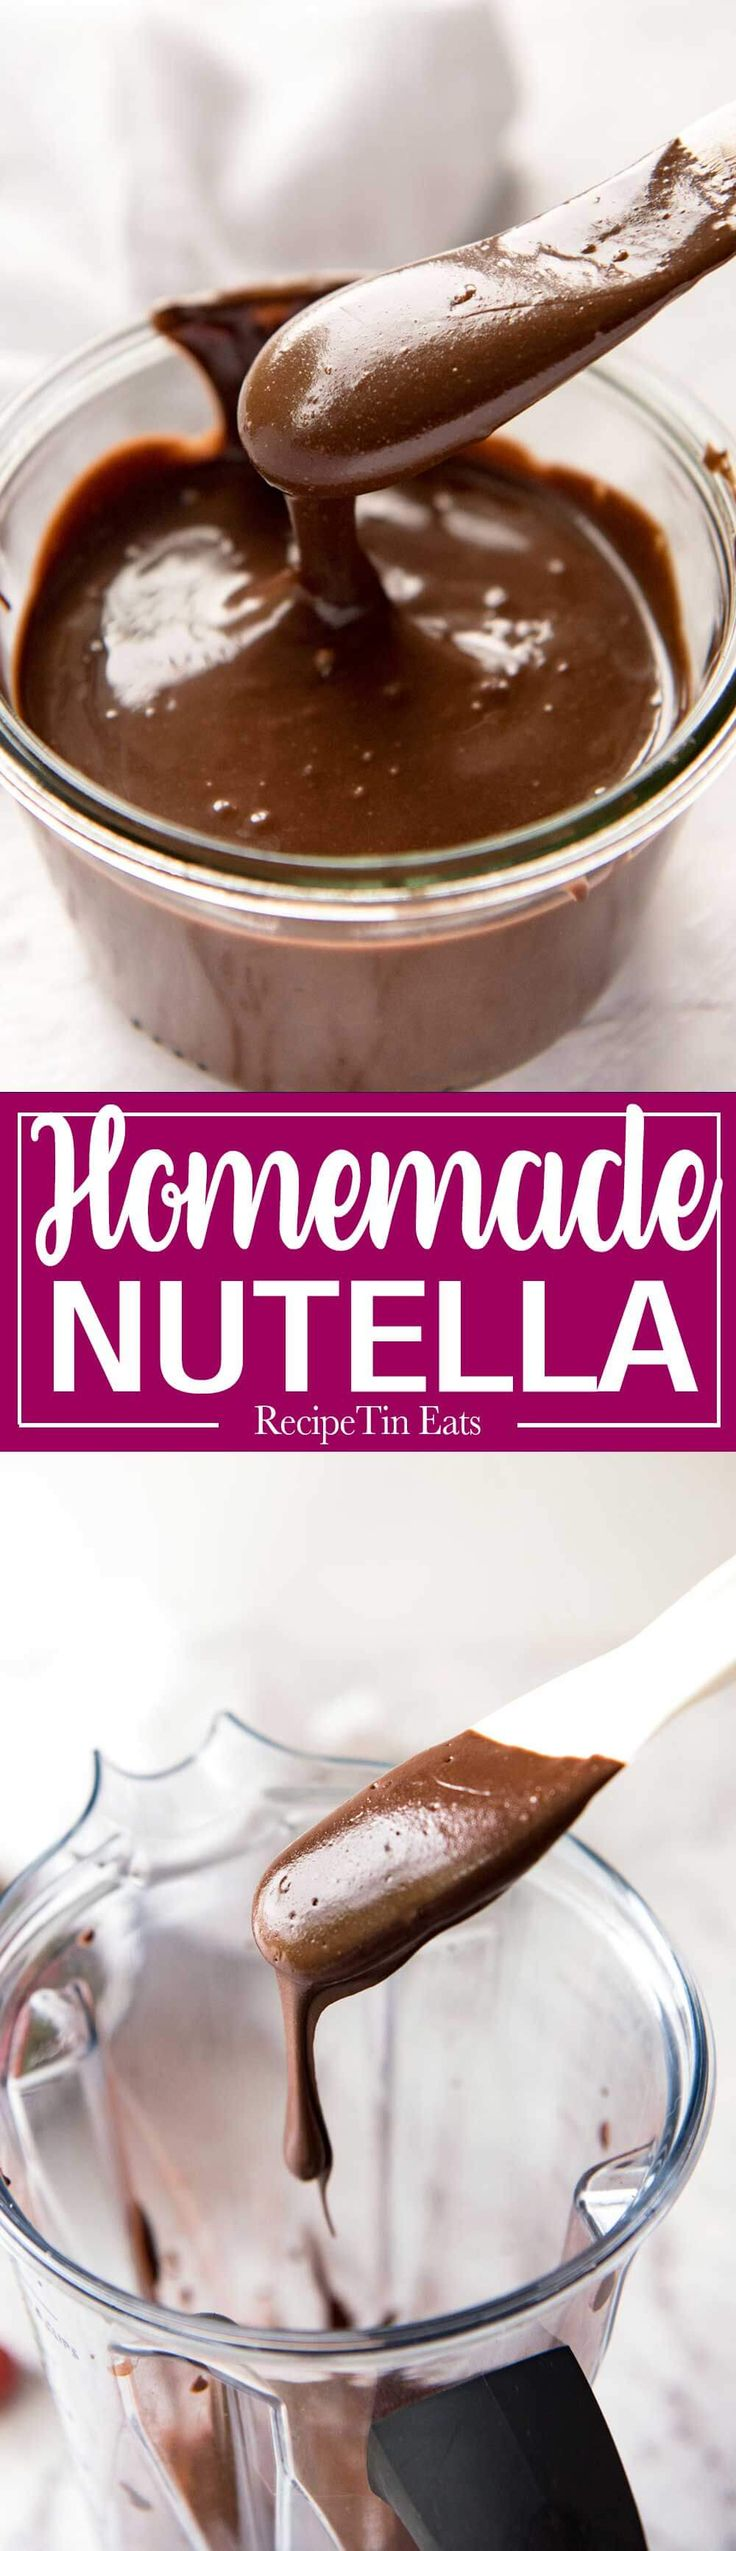 Homemade Nutella - Just hazelnuts, cocoa powder, confectionary / icing ...